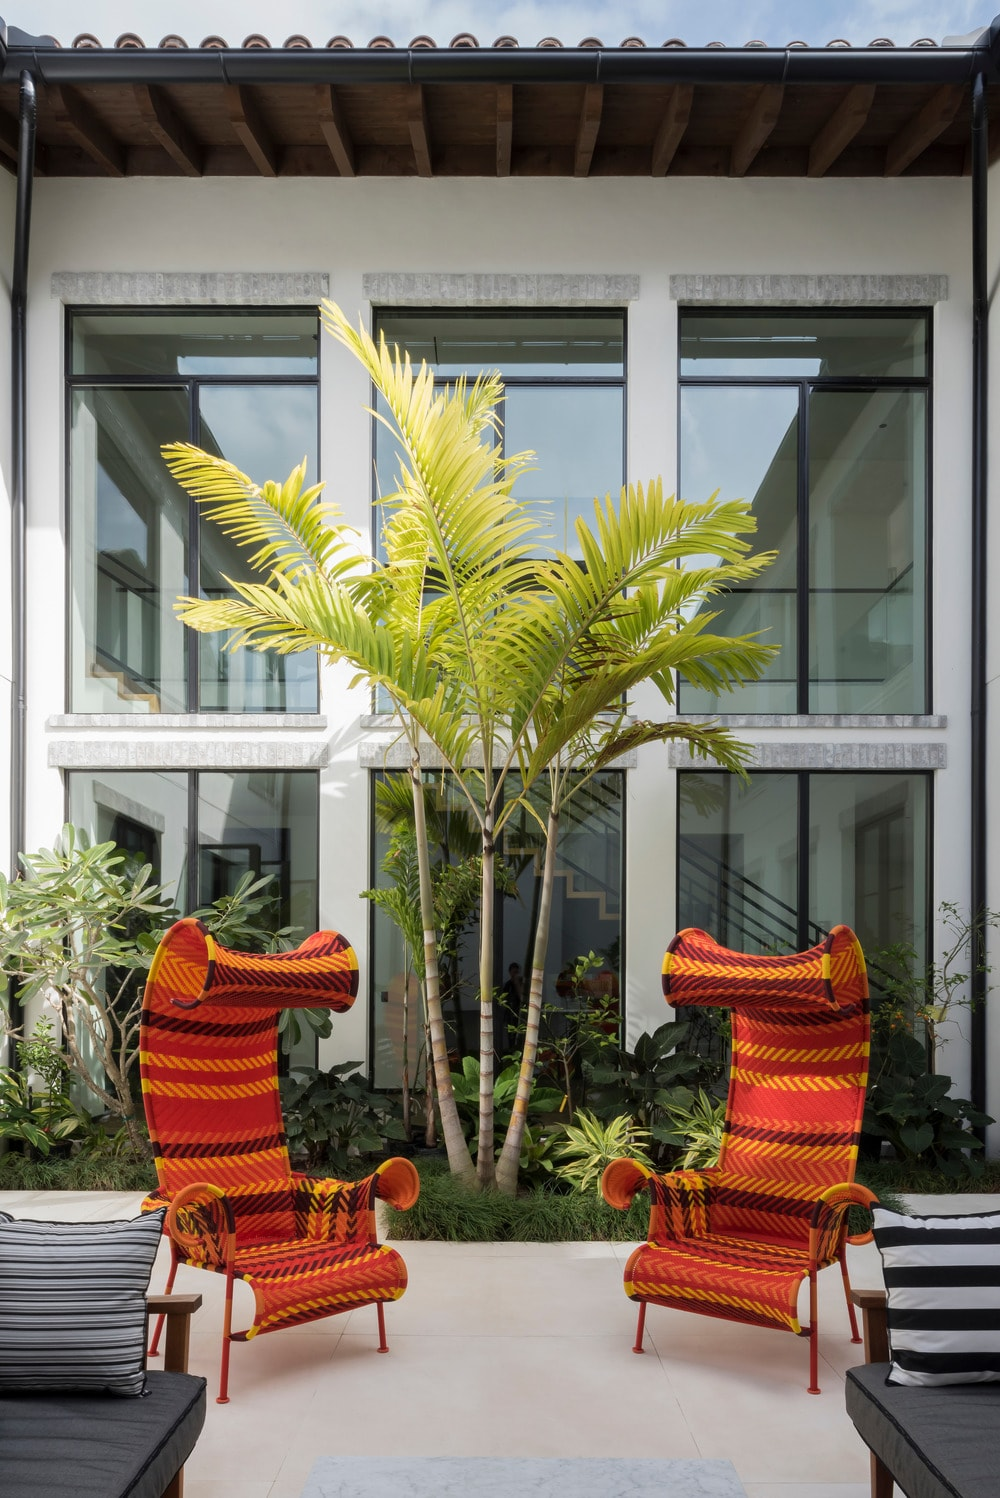 This is a look at the patio just outside the glass walls of the staircase showcasing the two colorful outdoor chairs and the landscaping of tropical plants.